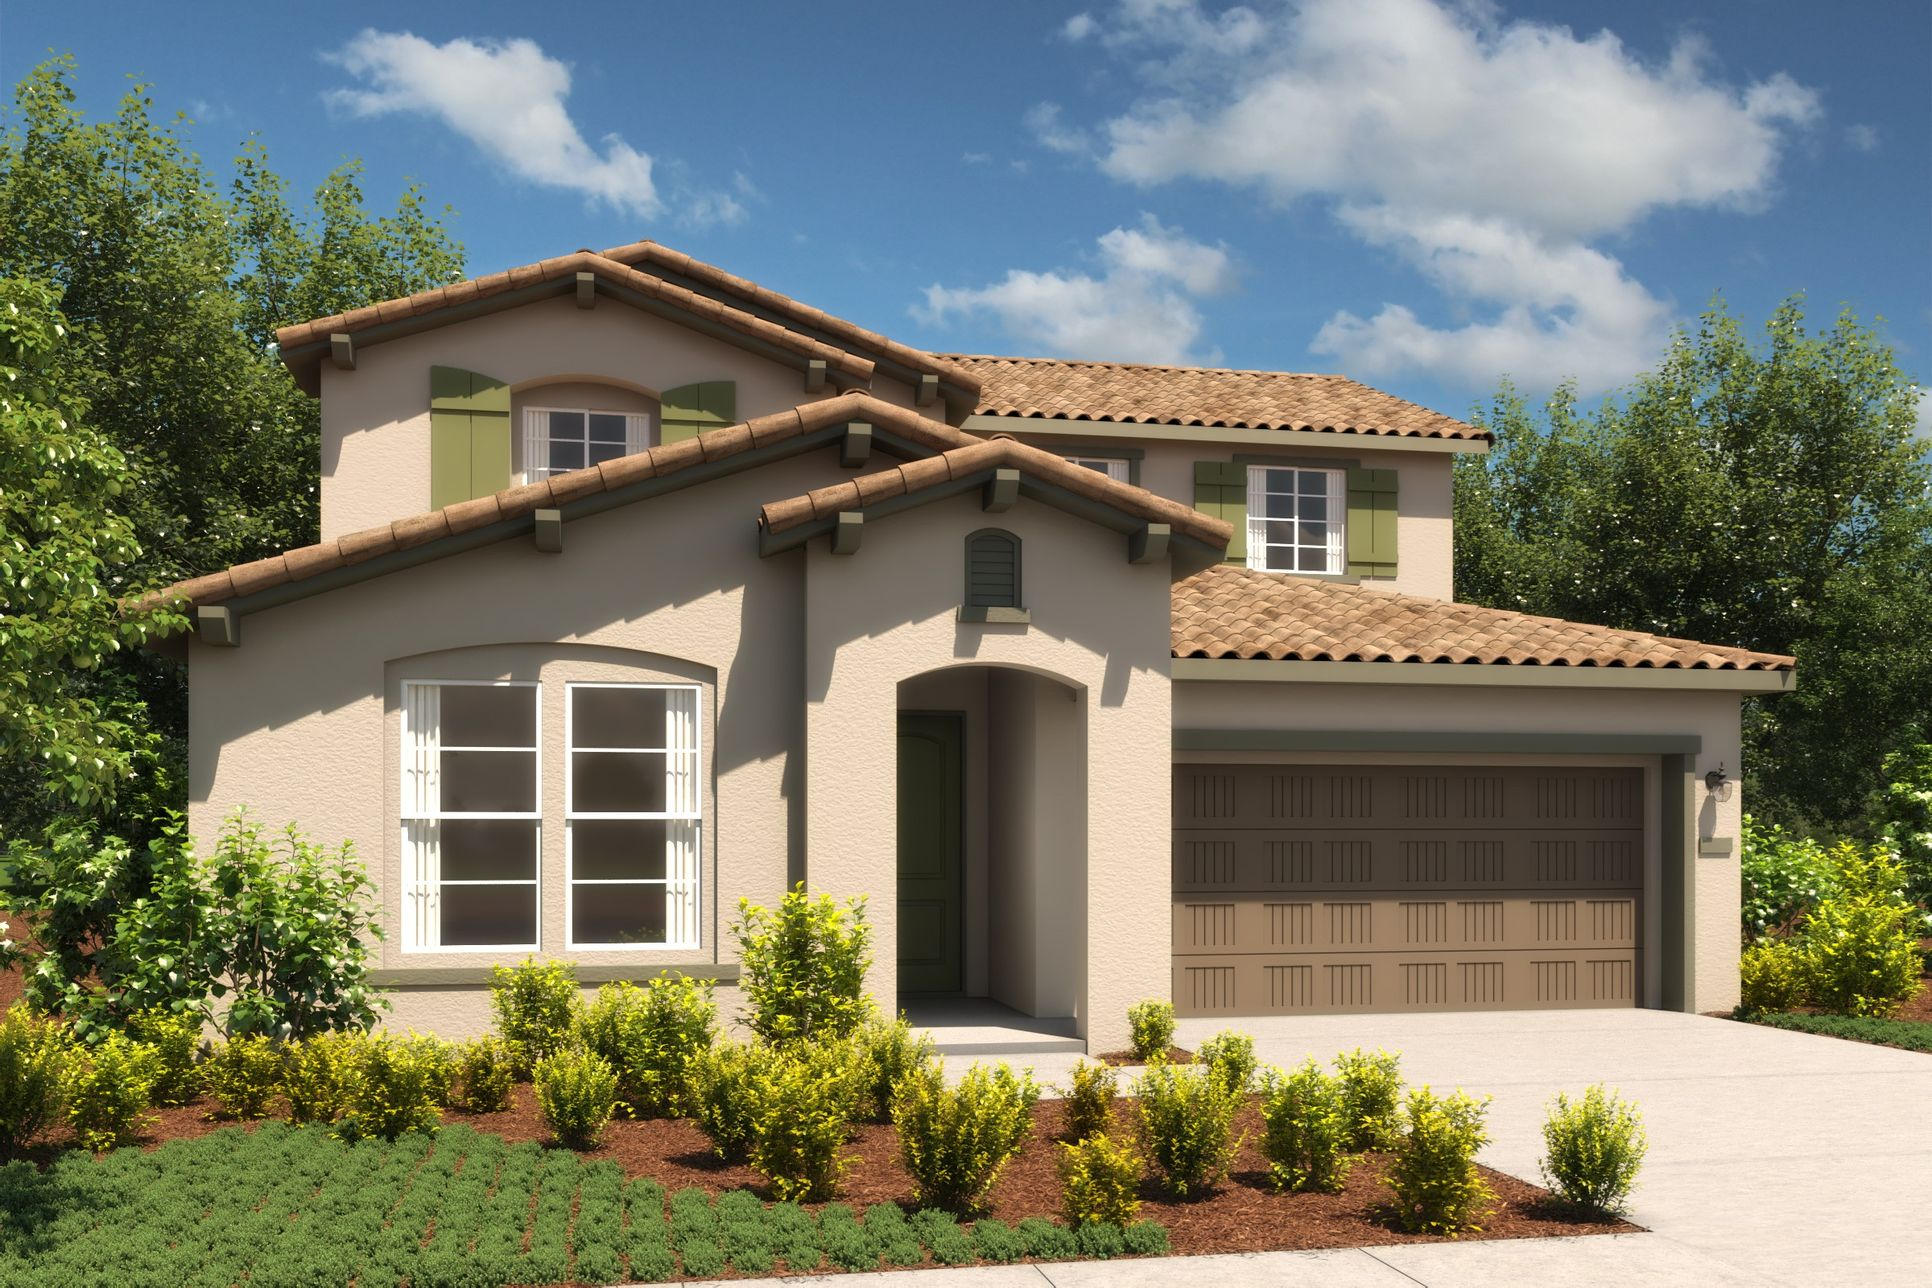 Exterior:Ruby Spanish Colonial A